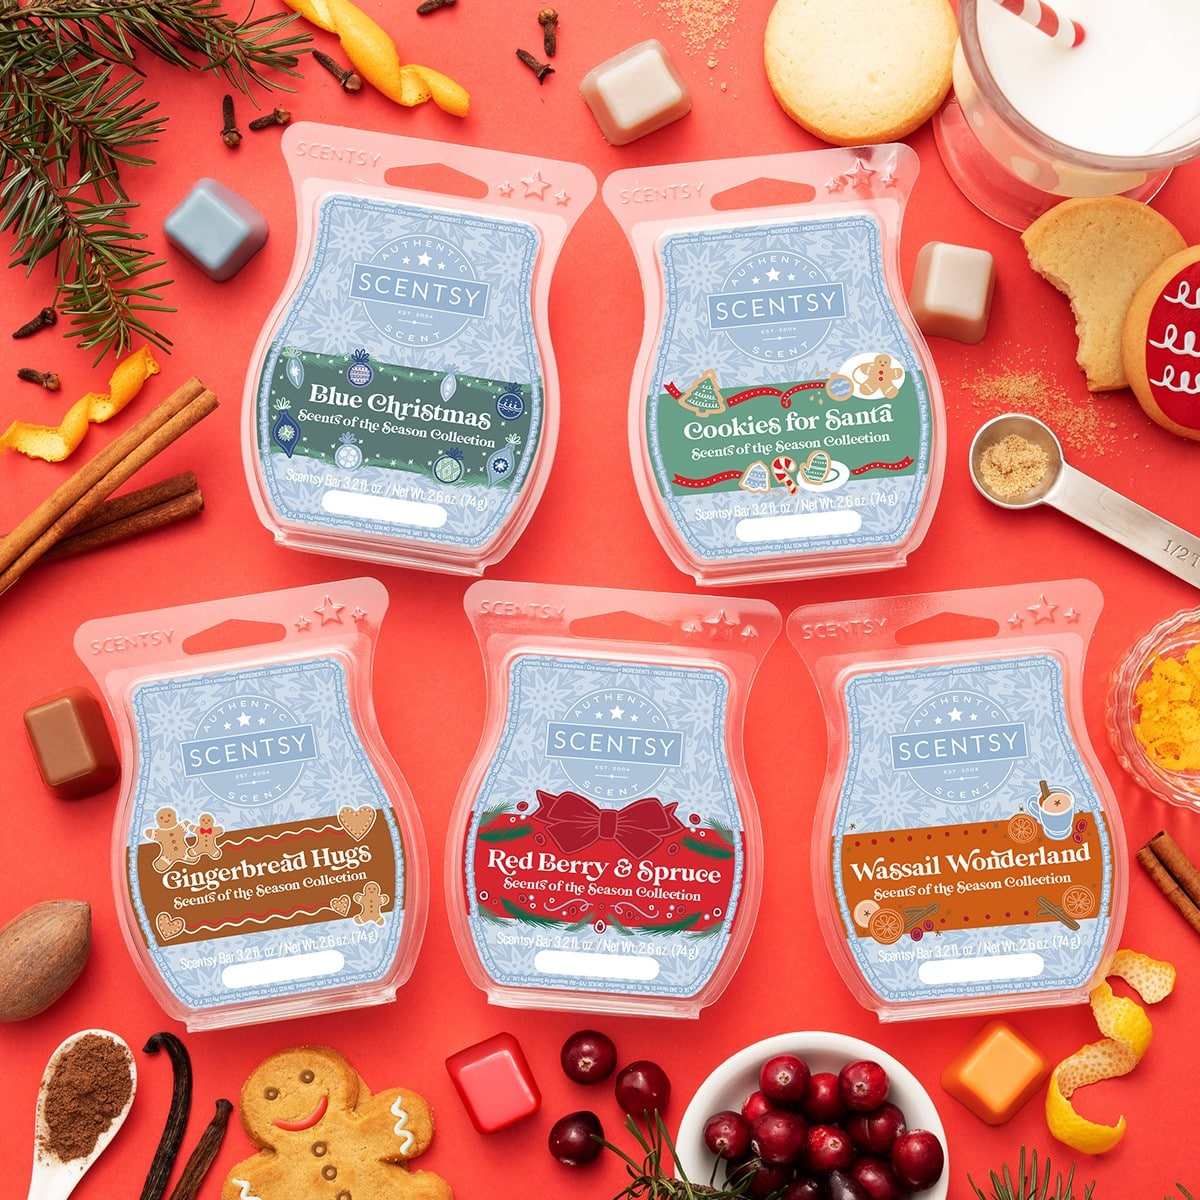 SCENTS OF THE SEASON BUNDLE | NEW! SCENTSY SCENTS OF THE SEASON | HOLIDAY 2020 | SHOP NOW